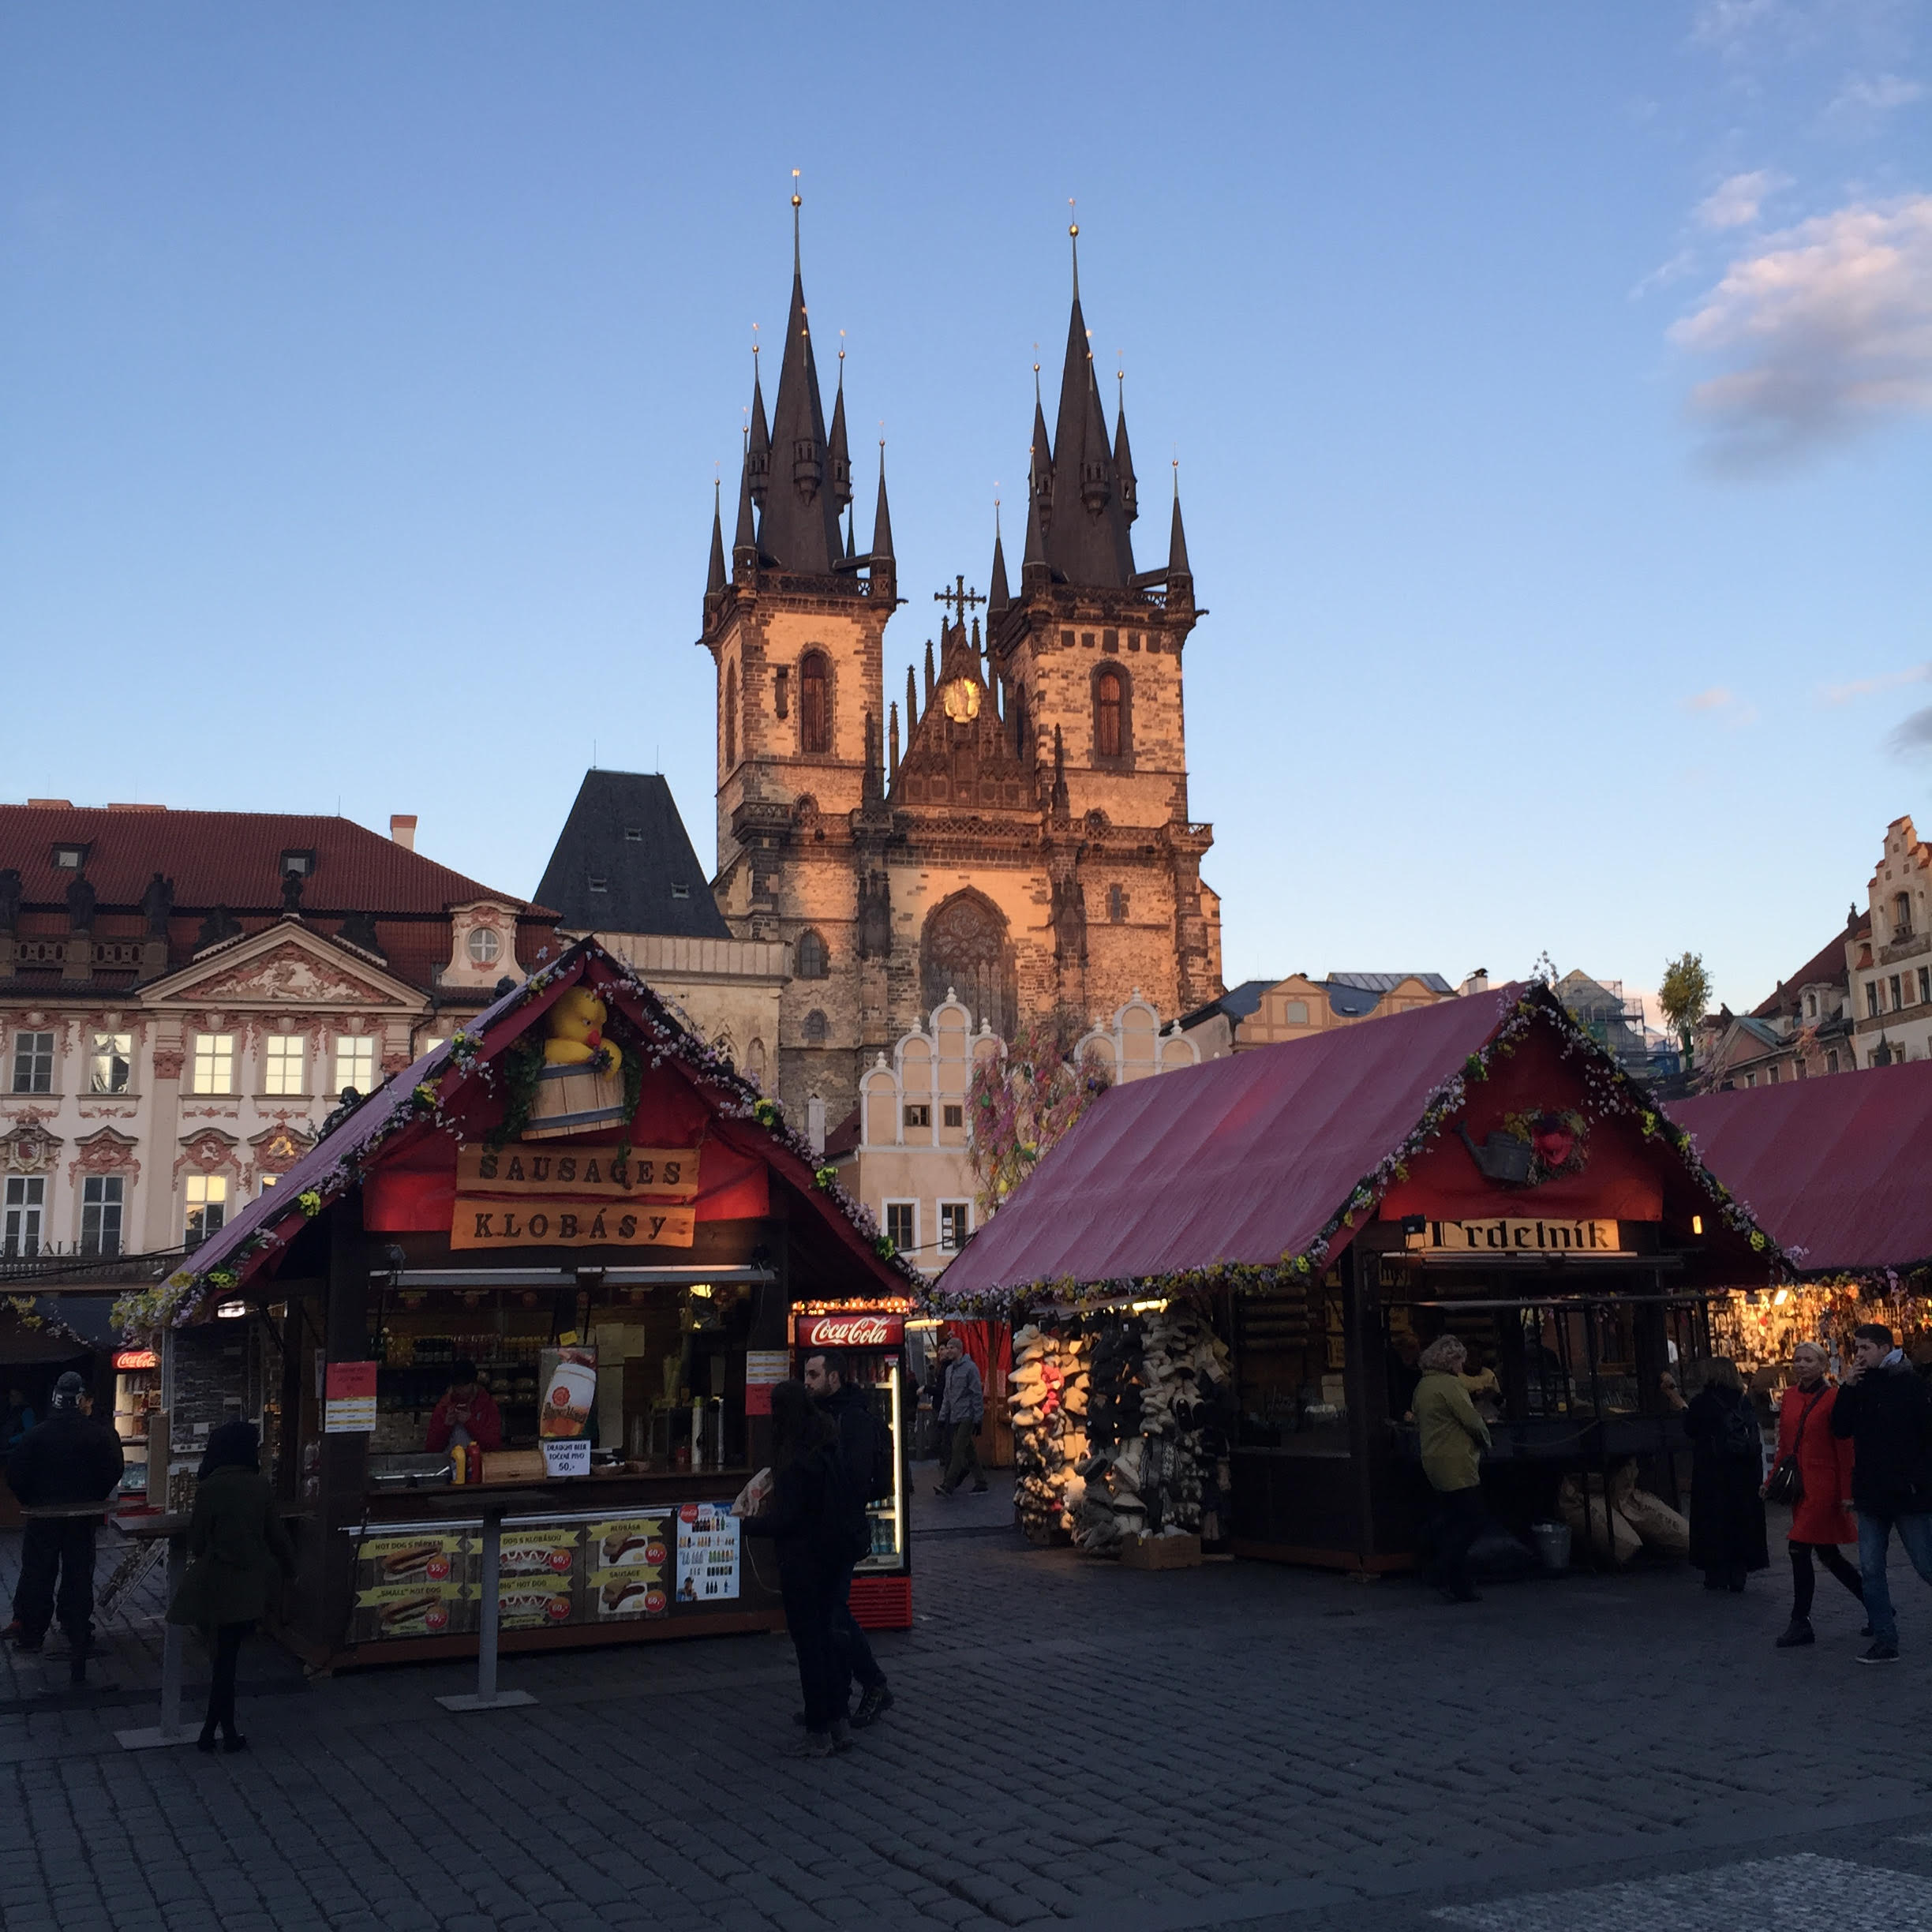 The gorgeous old town square is the backdrop for the Easter market stands